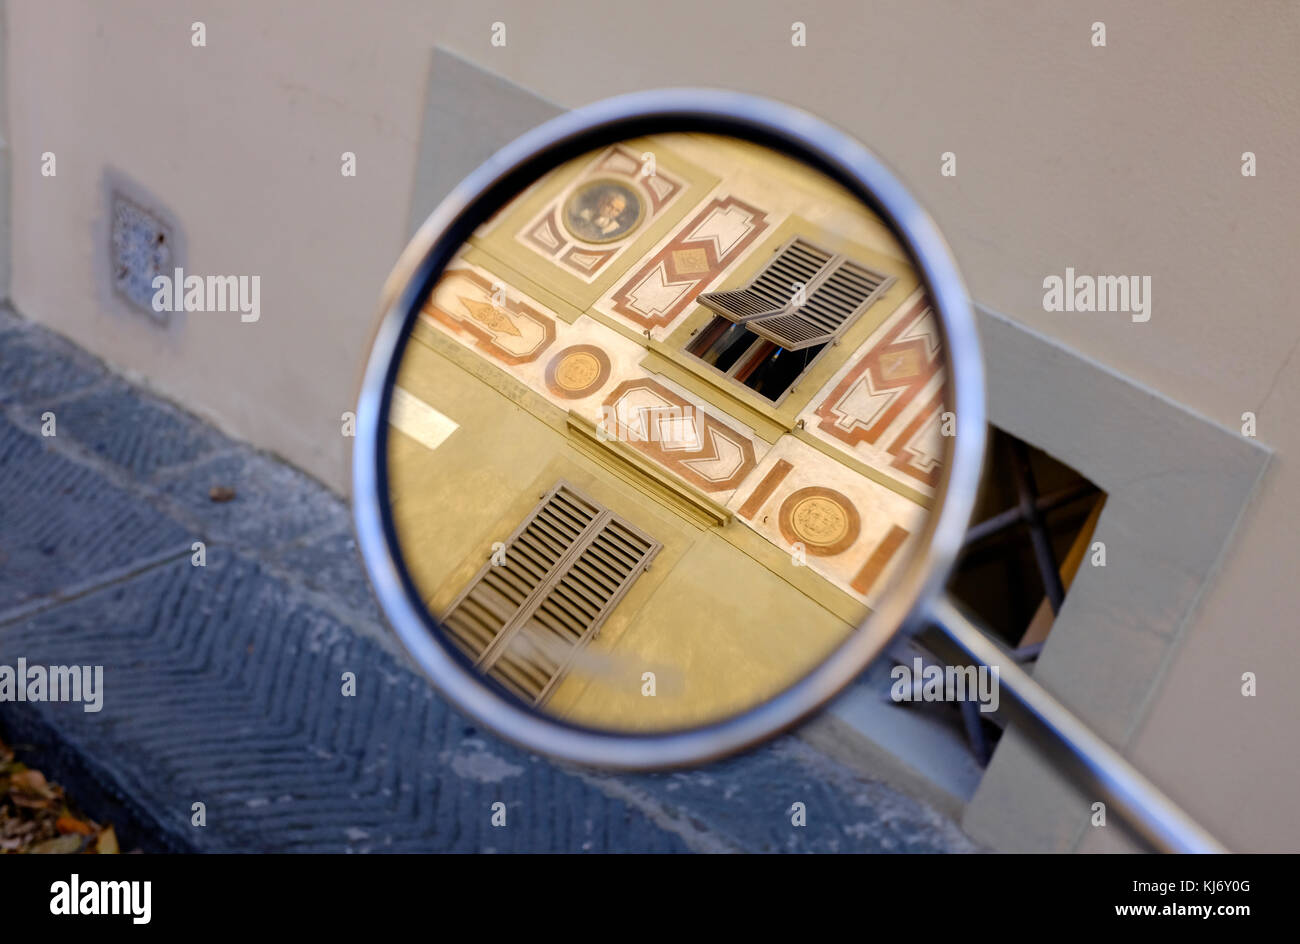 reflection of decorative florentine building in scooter wing mirror, florence, italy - Stock Image